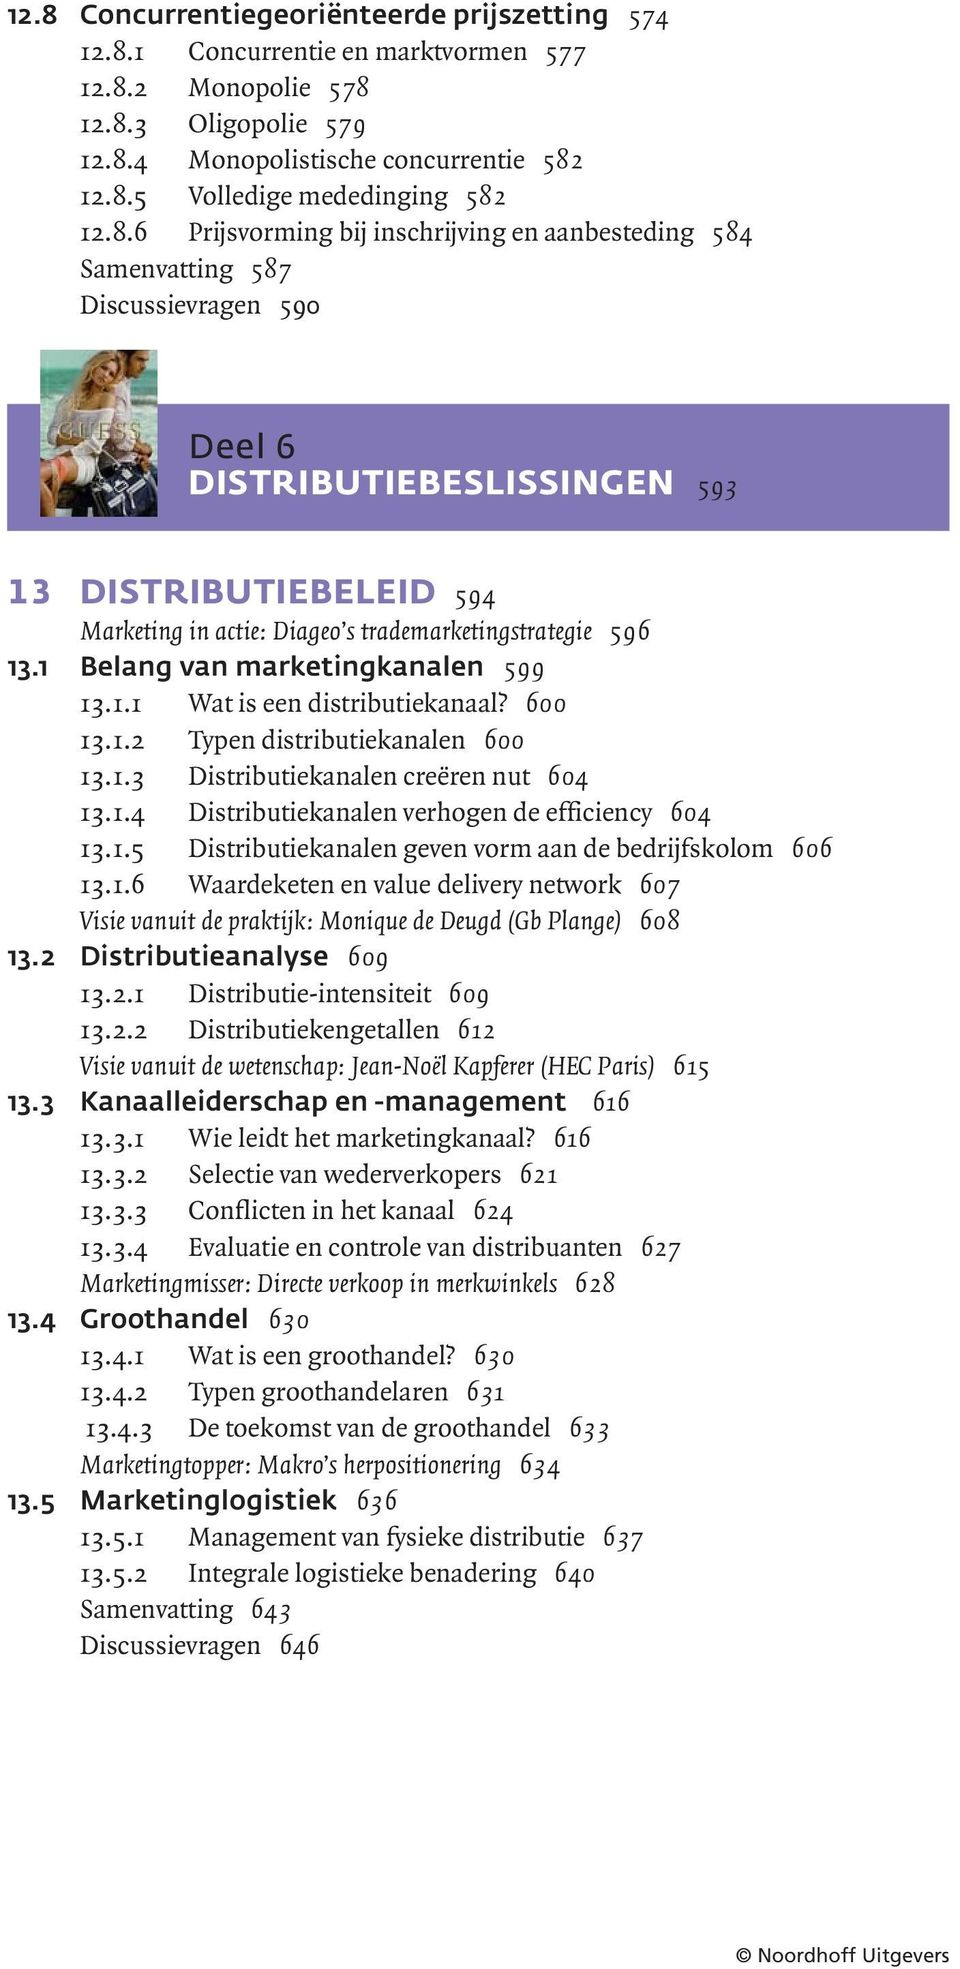 trademarketingstrategie 596 13.1 Belang van marketingkanalen 599 13.1.1 Wat is een distributiekanaal? 600 13.1.2 Typen distributiekanalen 600 13.1.3 Distributiekanalen creëren nut 604 13.1.4 Distributiekanalen verhogen de efficiency 604 13.